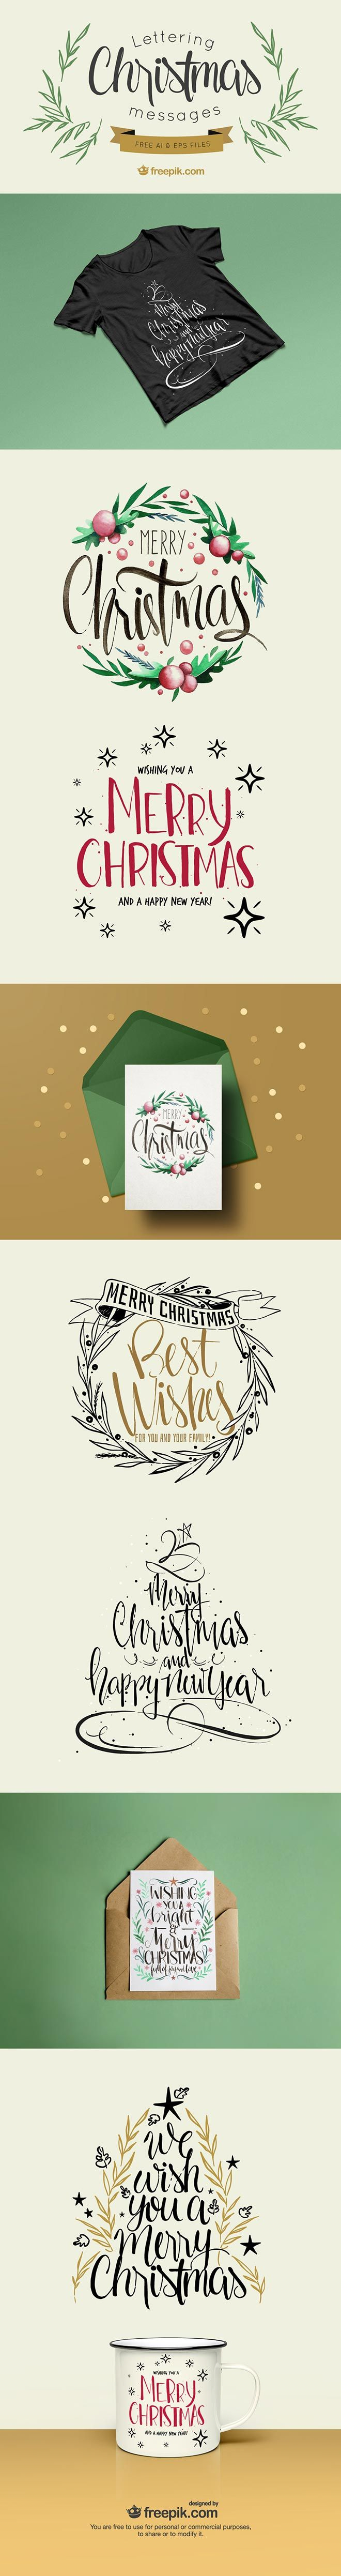 Access All Areas members have a wonderful collection of vector Christmas lettering messages to download this week, courtesy of Freepik. Each one of these 6 type pieces contains a festive message, accompanied with vector elements and graphics. Use them to quickly create Christmas greetings as part of promotional design material during the run up to …